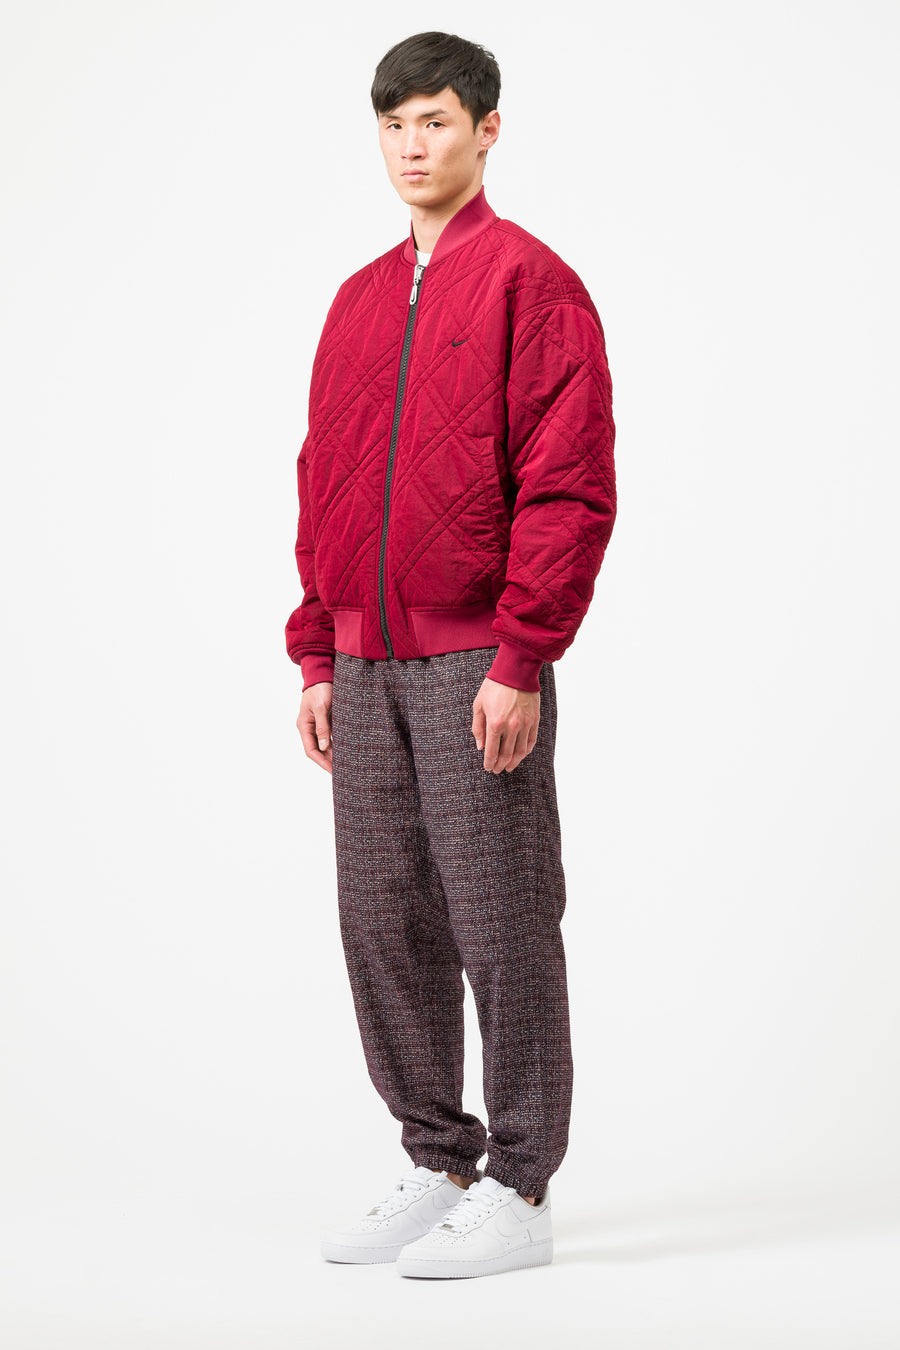 Nike Classic x Sport Jacket in Red/Black - Notre